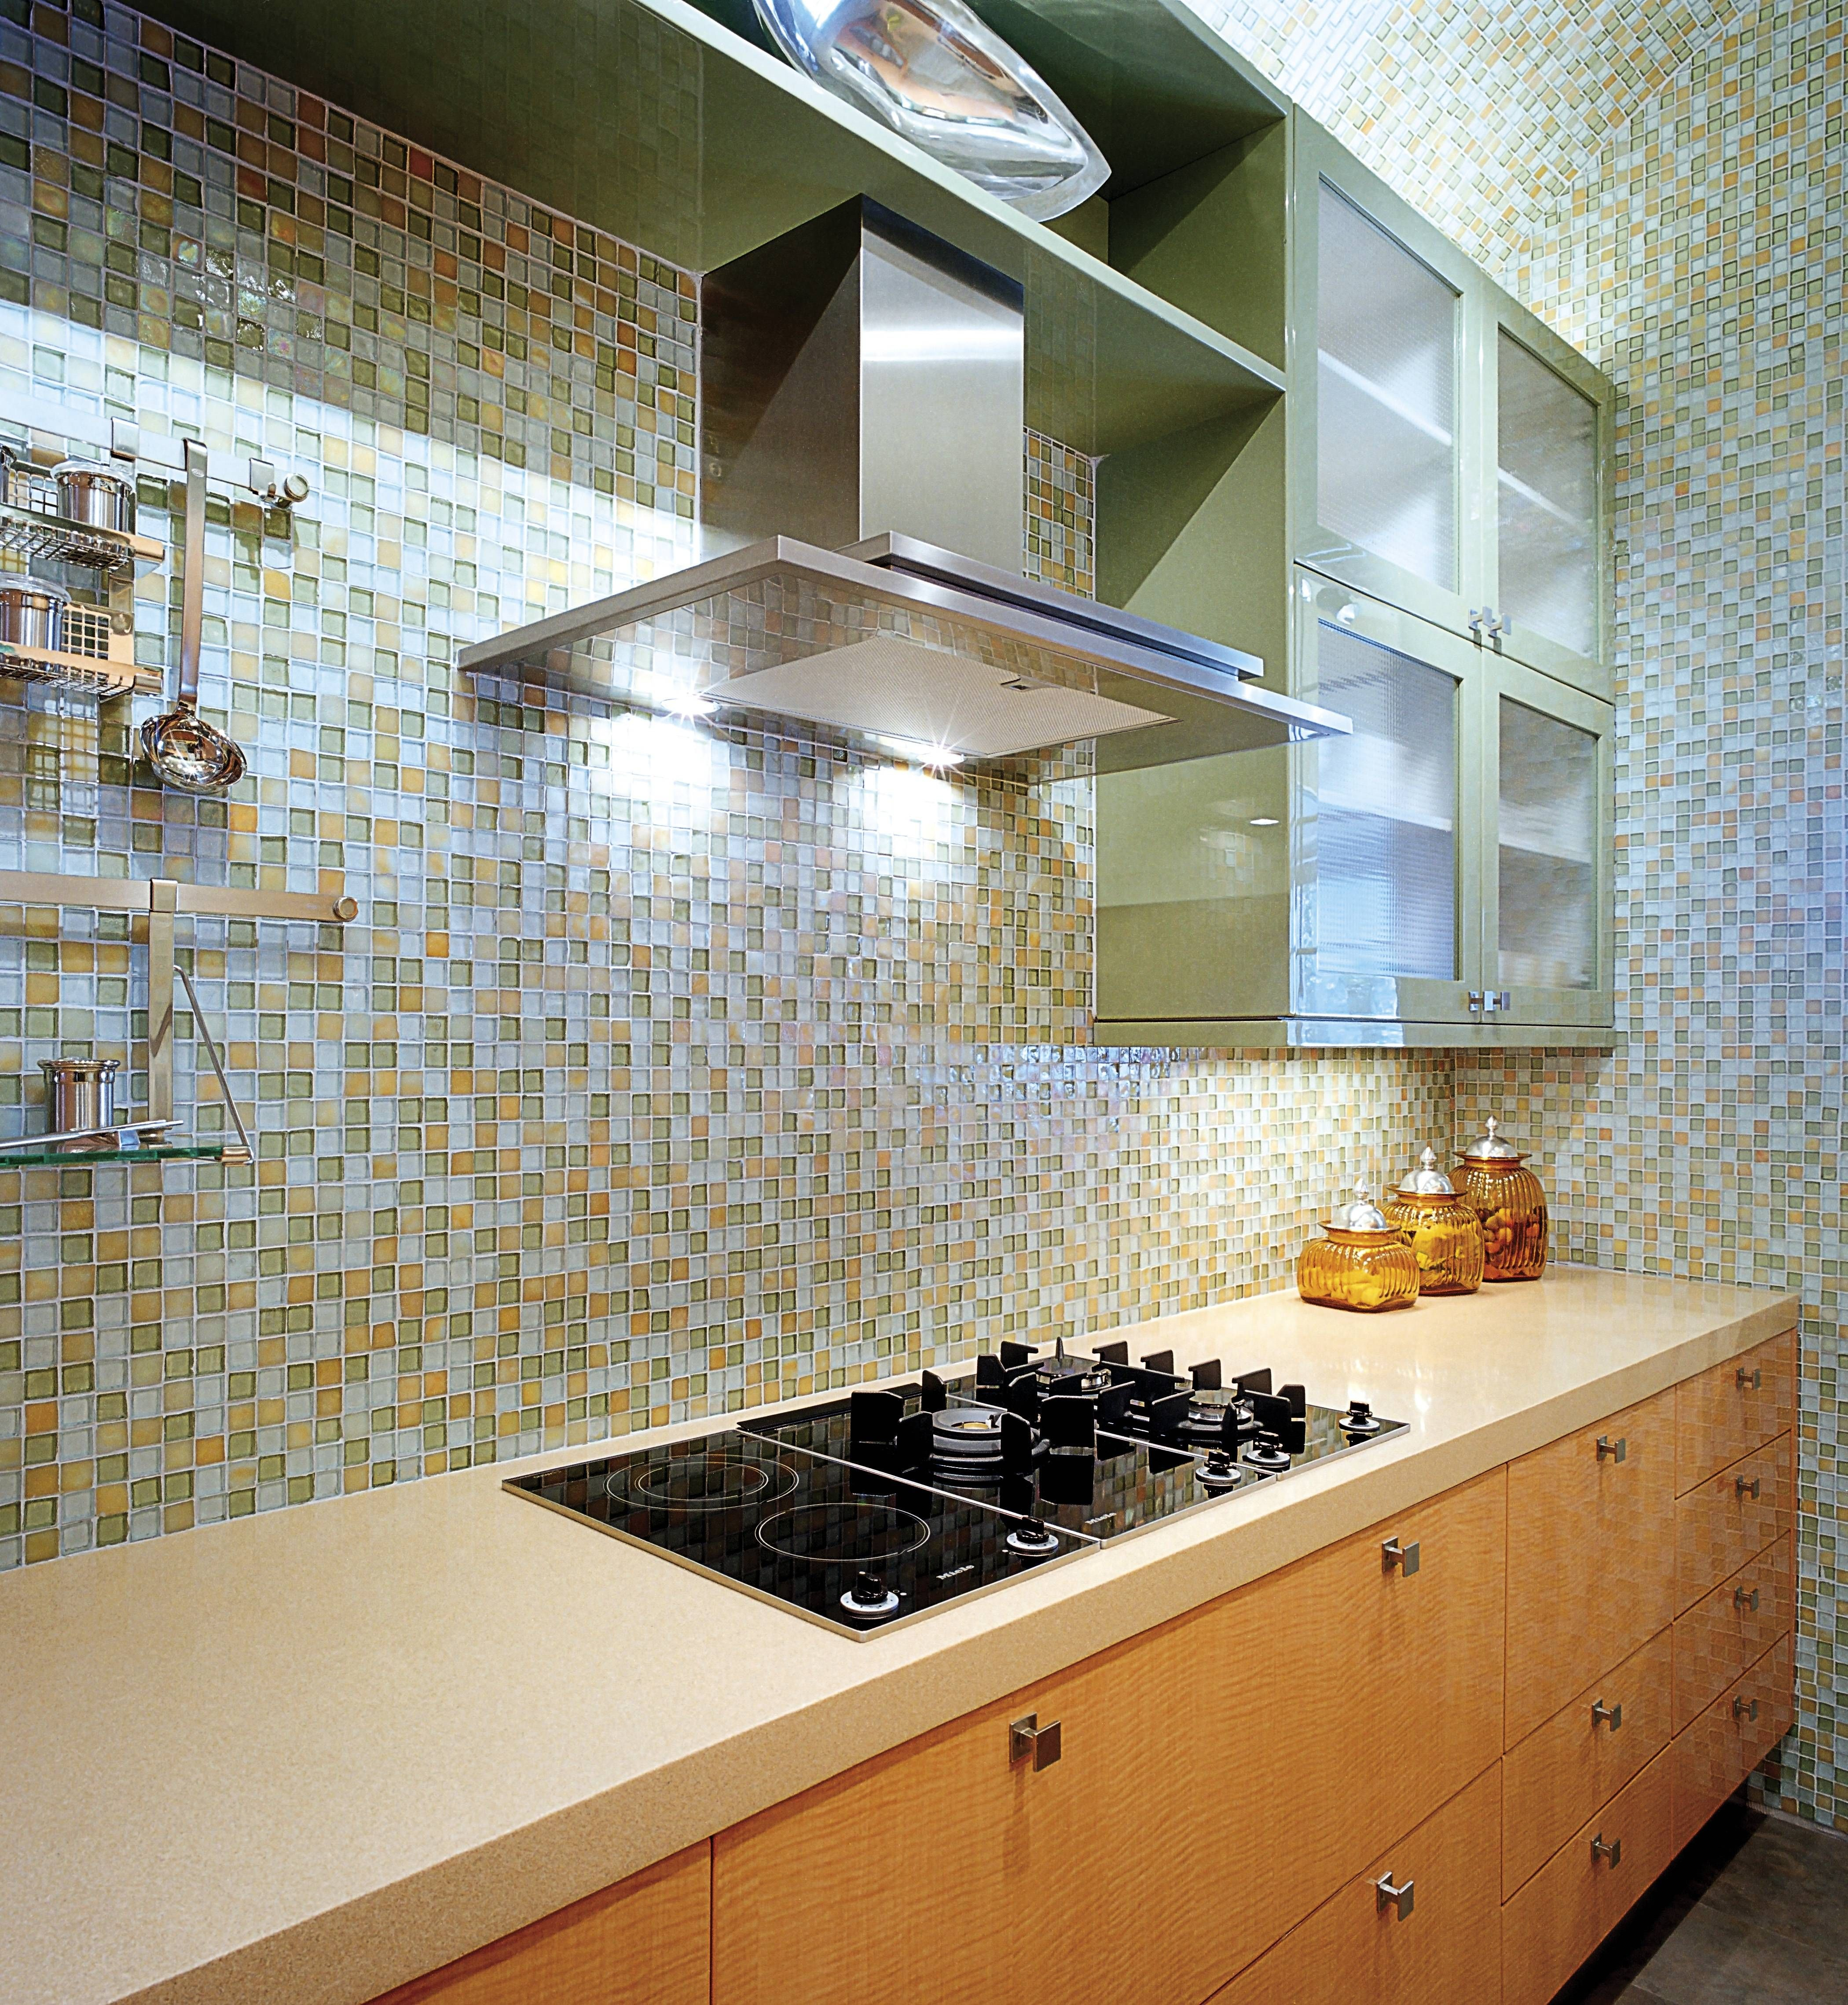 Best Kitchen Gallery: Kitchen Backsplash Ideas Ceramic Tile 1516 Kitchen Backsplash of Euro Kitchen Hood Style on rachelxblog.com